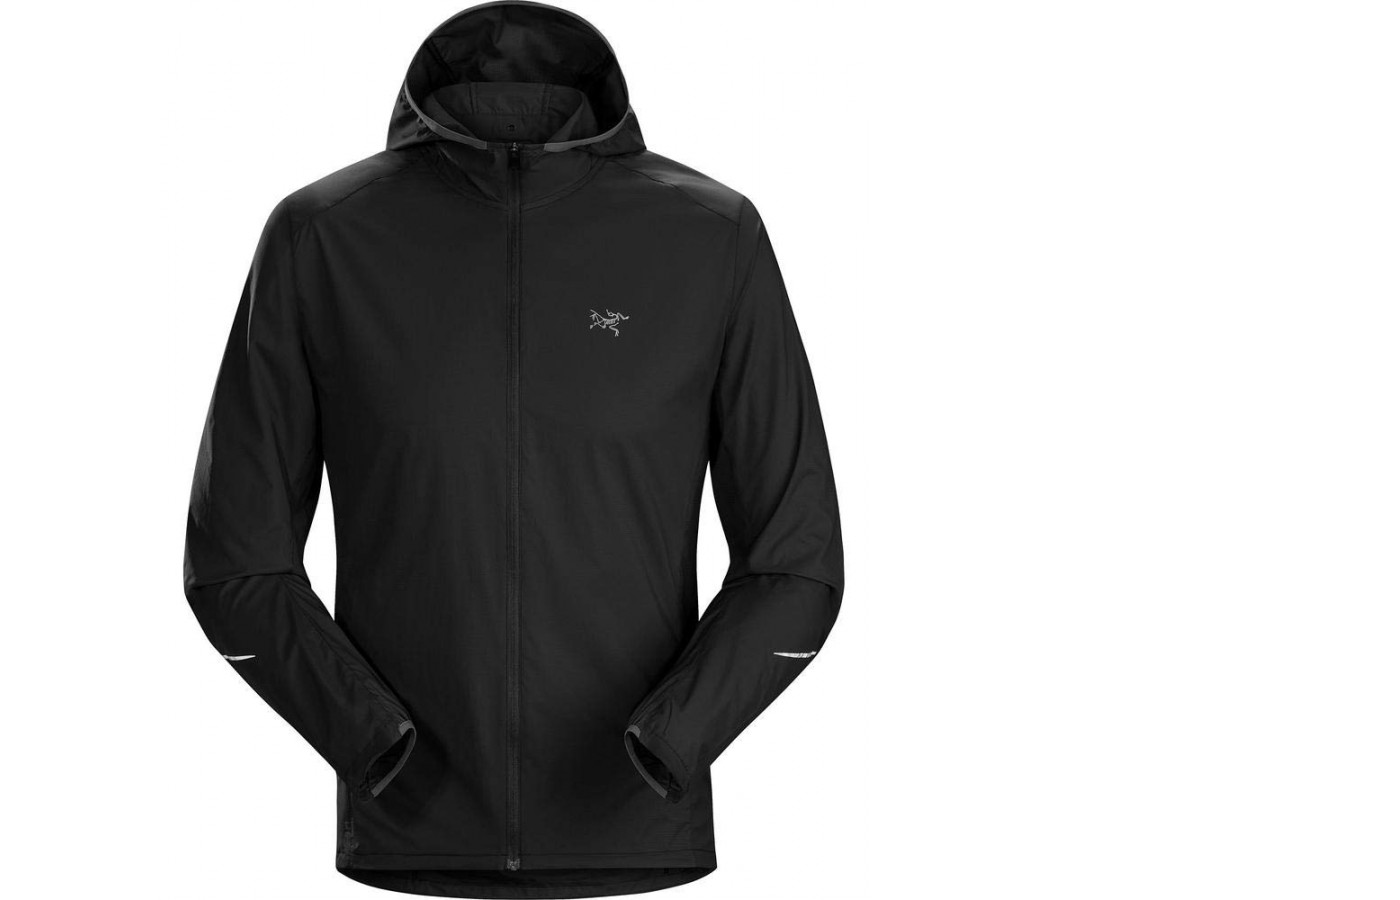 The Arc'teryx jacket is perfect for wearing in windy conditions.